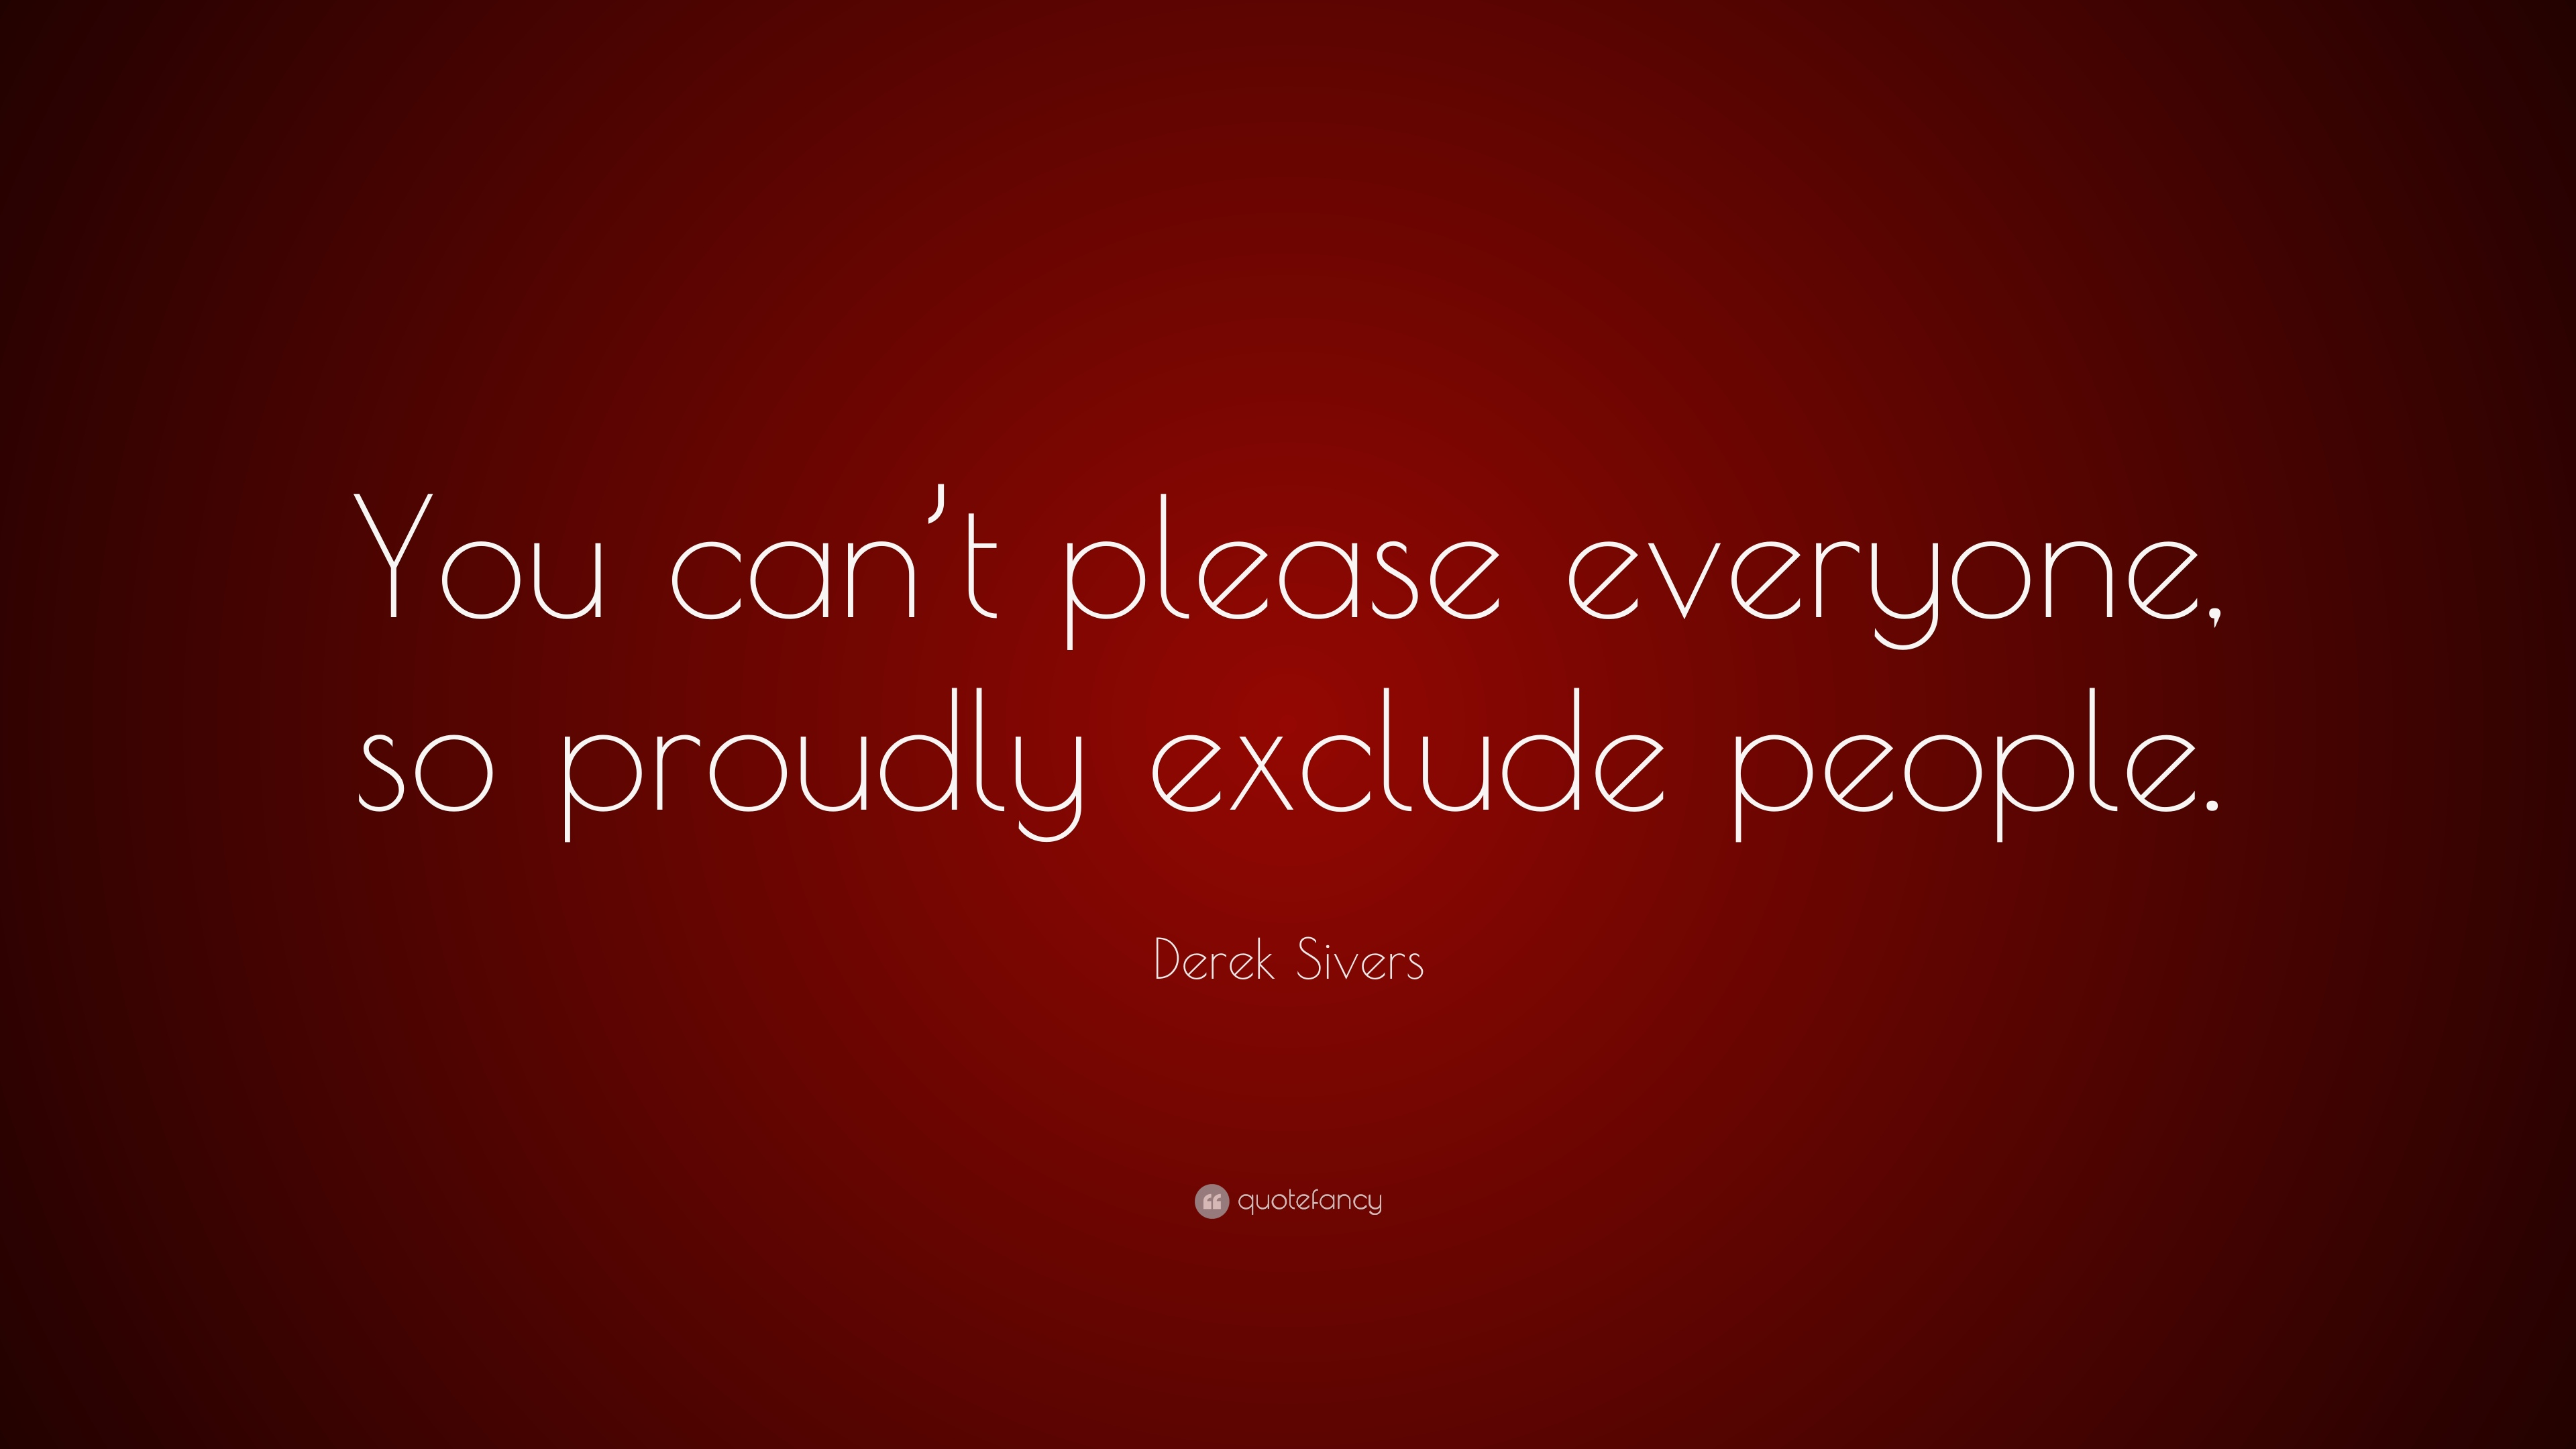 Please Everyone Quote: Derek Sivers Quotes (40 Wallpapers)